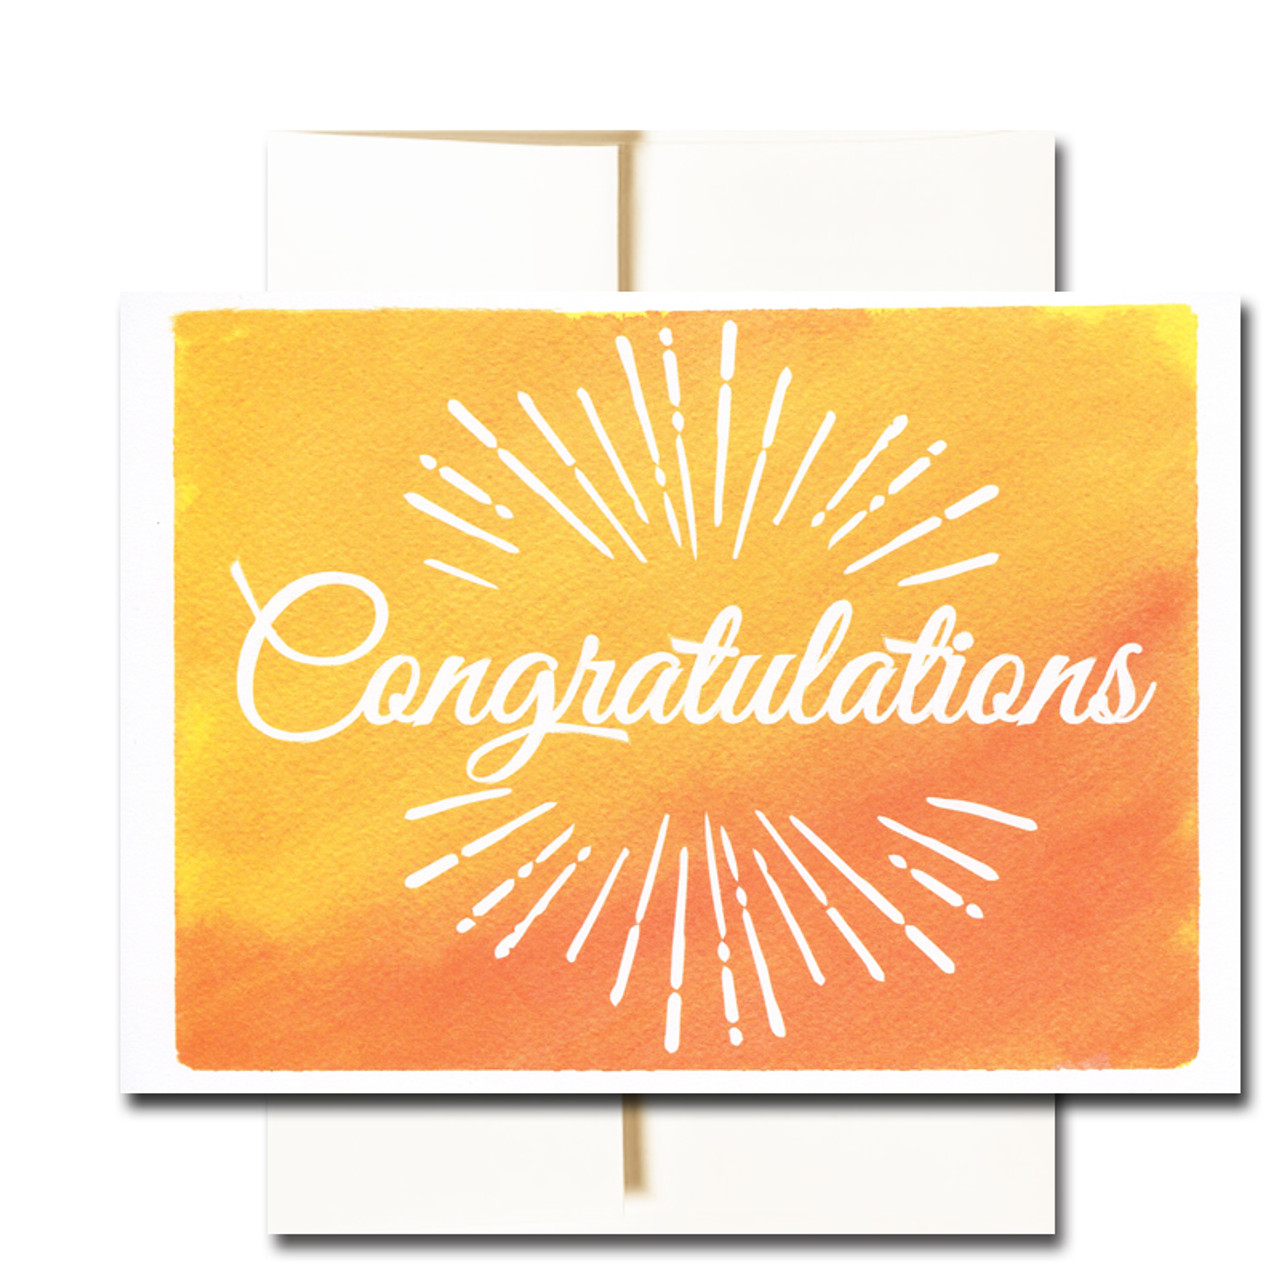 boxed business congratulations note card sunburst